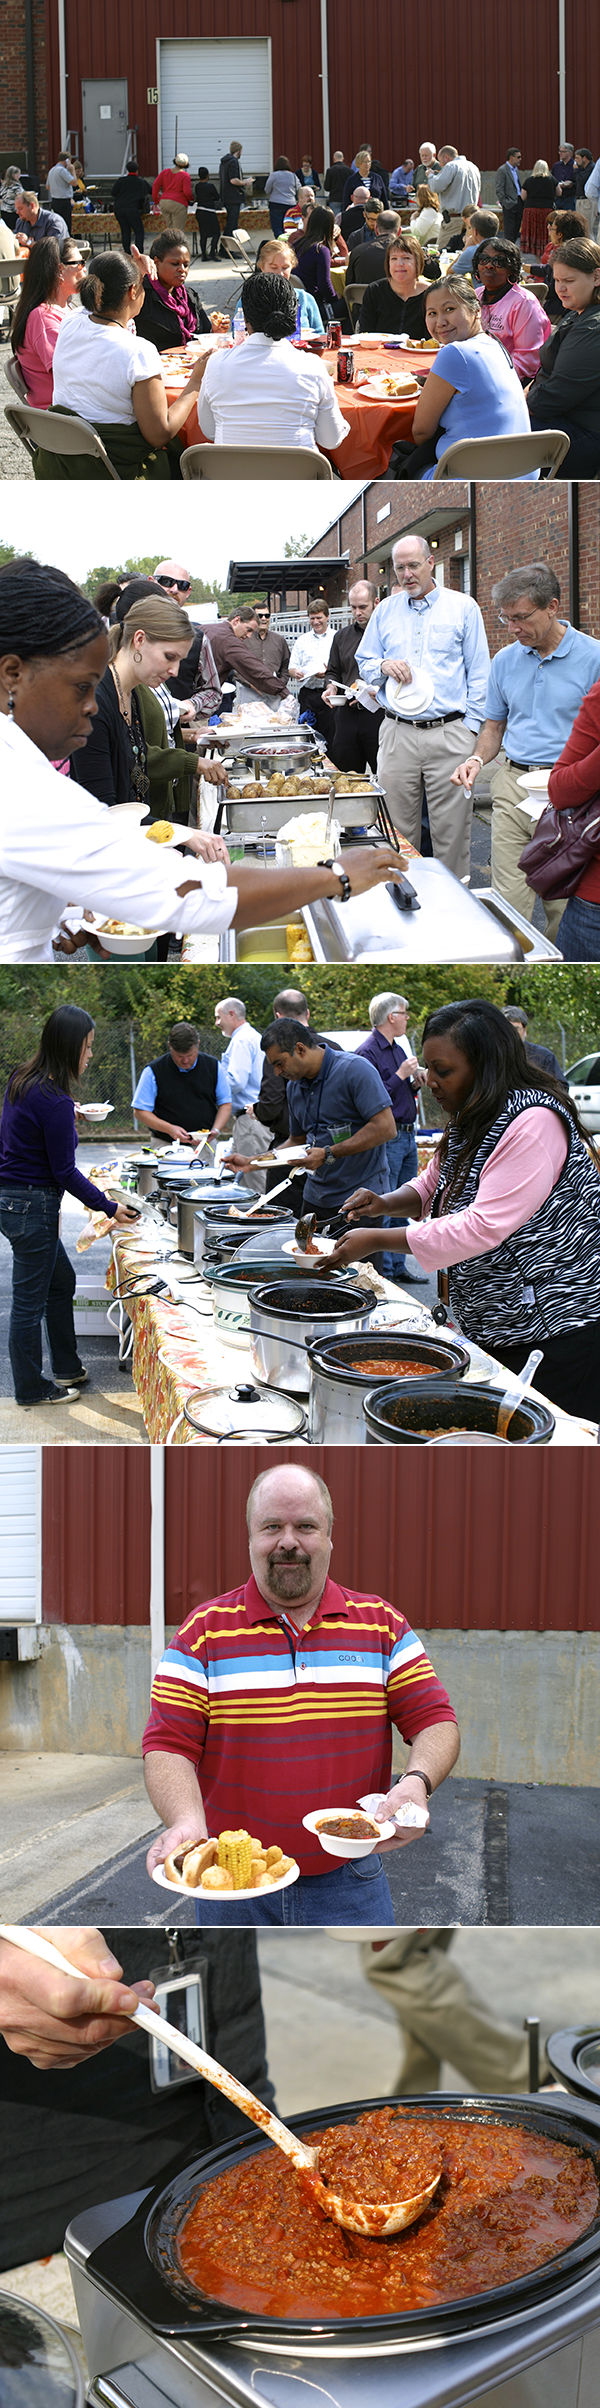 group of 5 photos from an outdoor employee chili luncheon